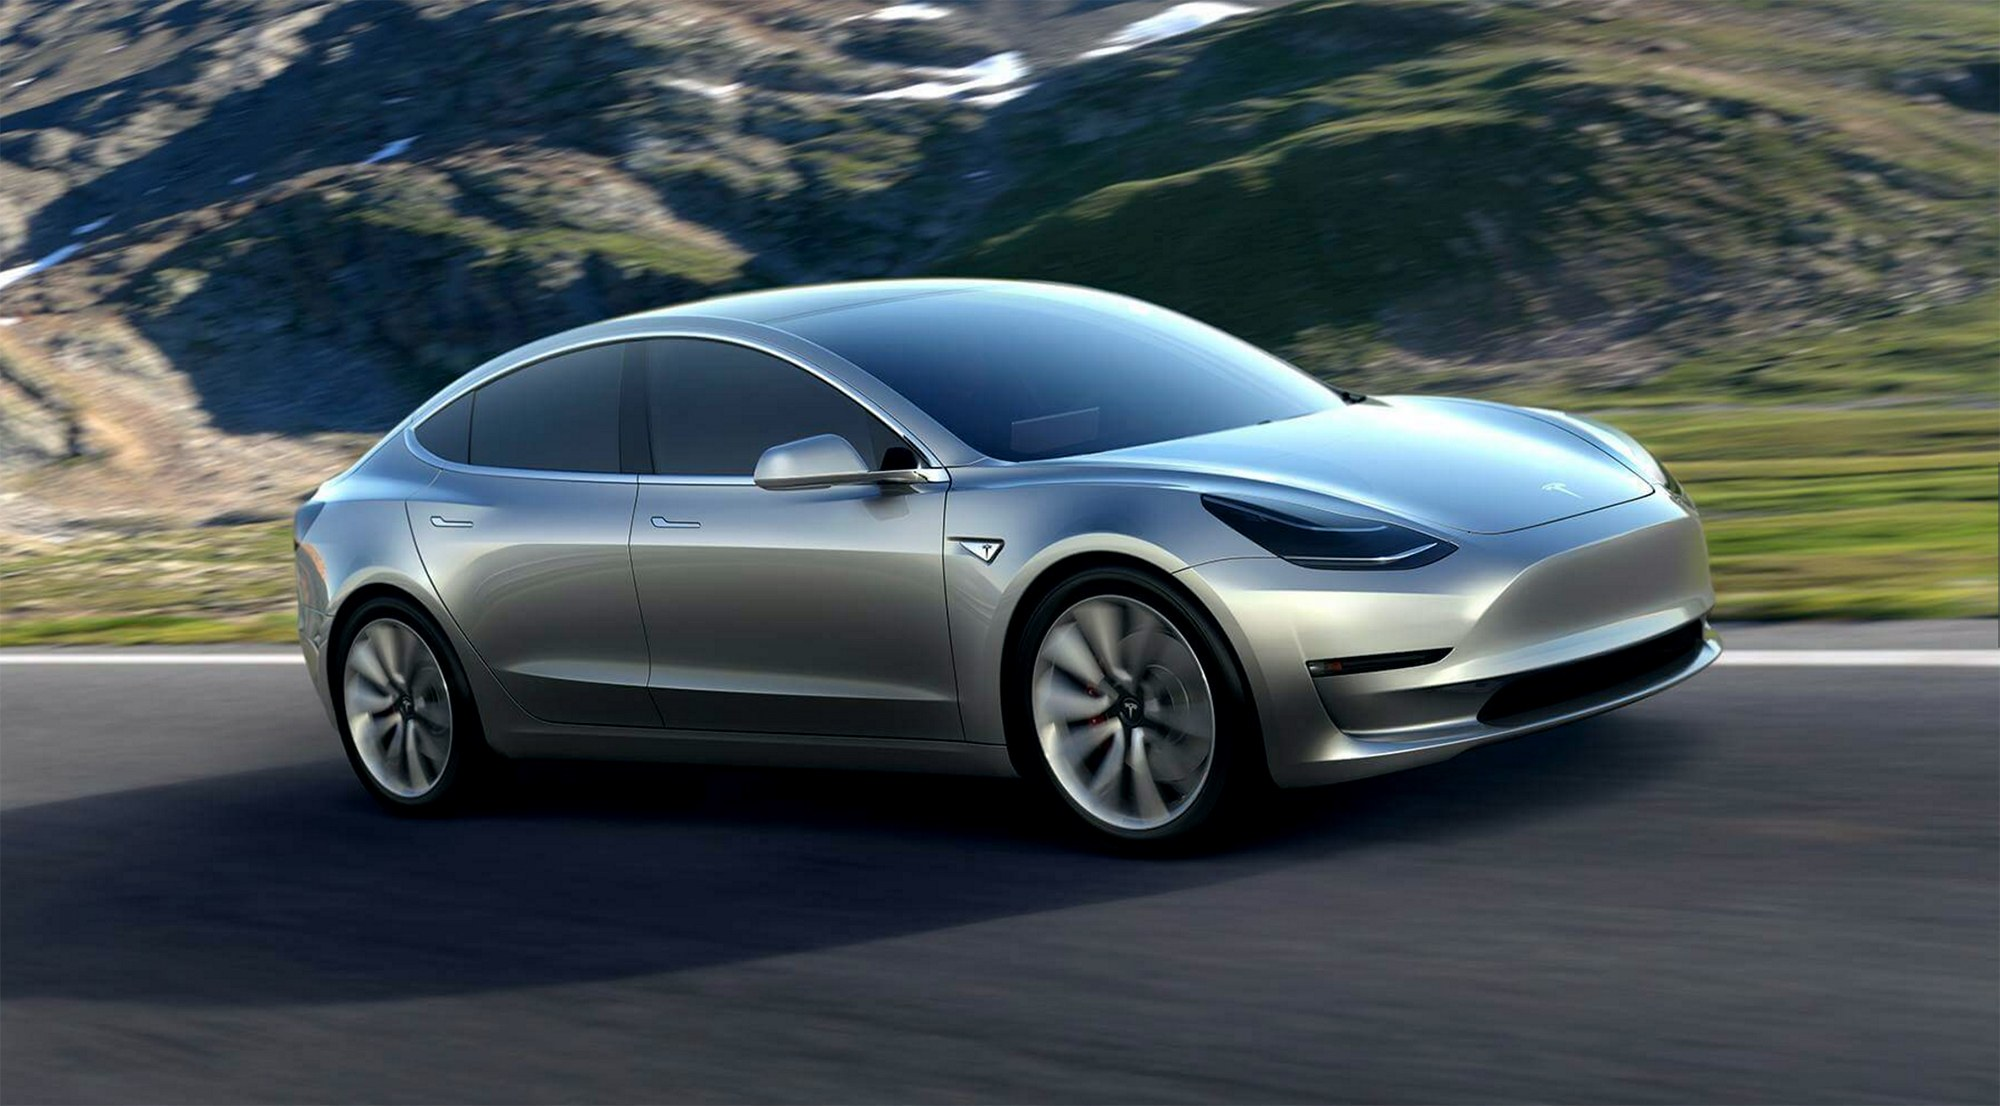 72 New 2020 Tesla 3 Wallpaper